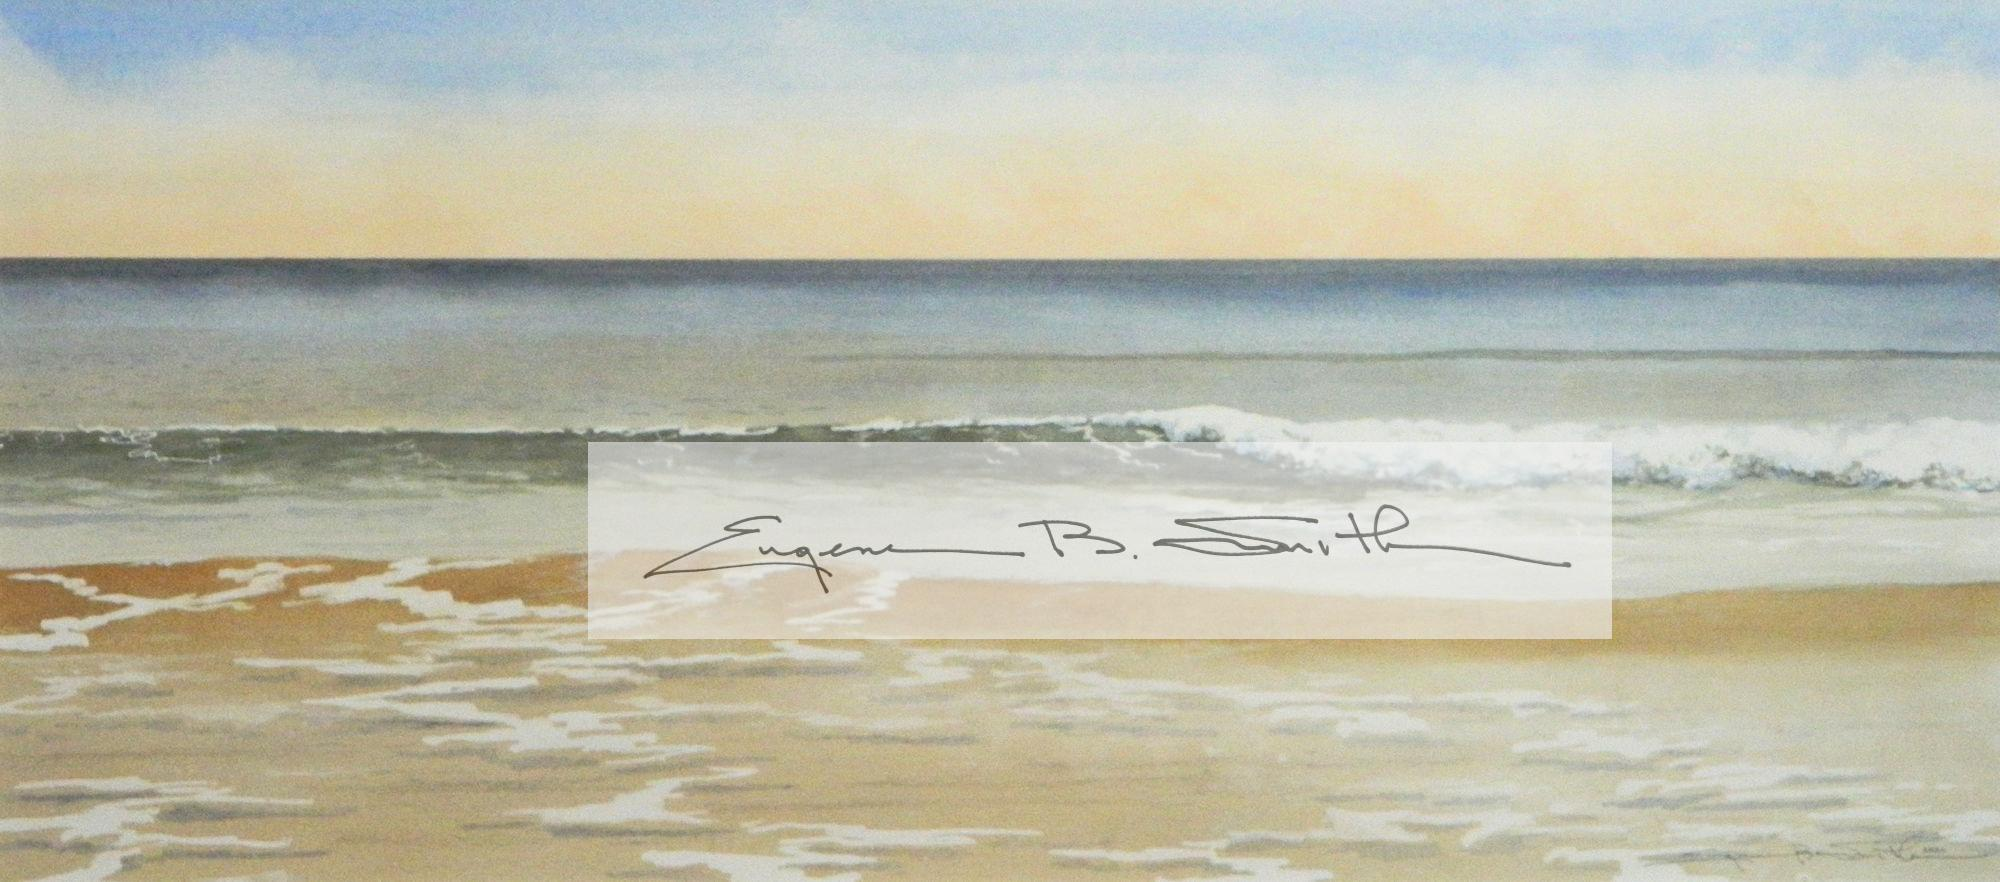 Quiet Sands | Image size: 9.5 x 21.5 | Frame size: 17.5 x 29.5 | Call for price